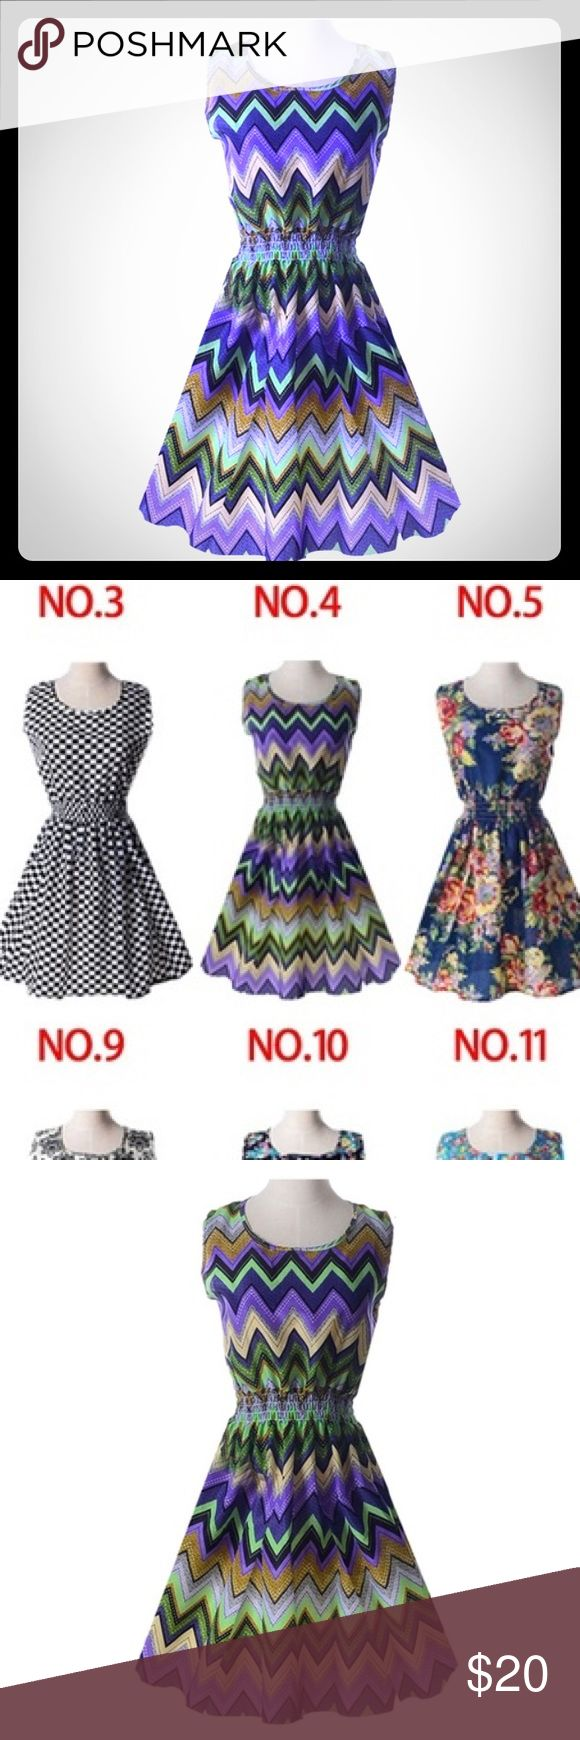 """flirty chevron print dress Flowy scoop neck dress with elasticized waist. Silky, thin material. Labeled size large, but runs small. Please note; when laid flat, measures 17"""" from armpit to armpit and about 33"""" from shoulder to hem. BRAND NEW in original packaging. 🚫NO TRADES dongxing Dresses"""